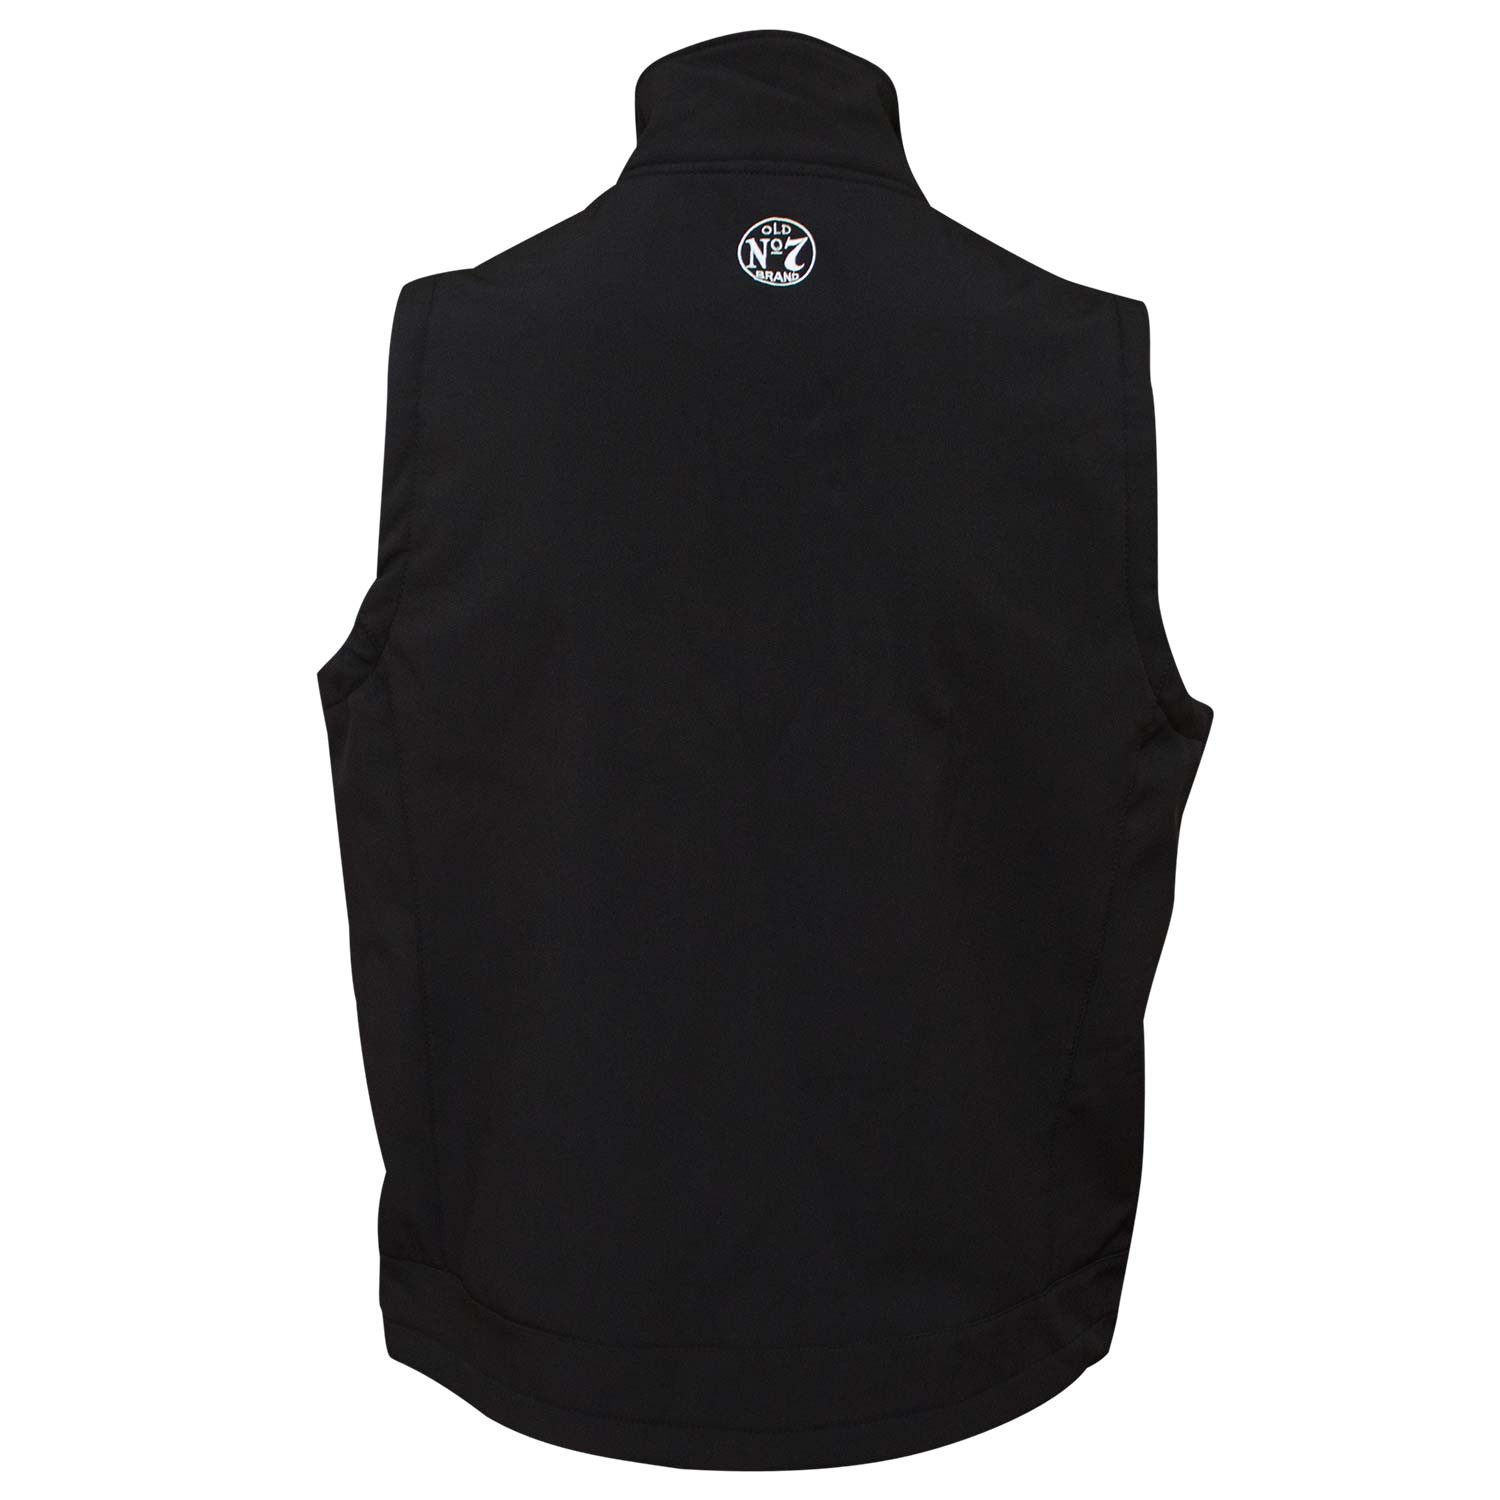 Jack Daniel's Softshell Zip-Up Men's Black Vest